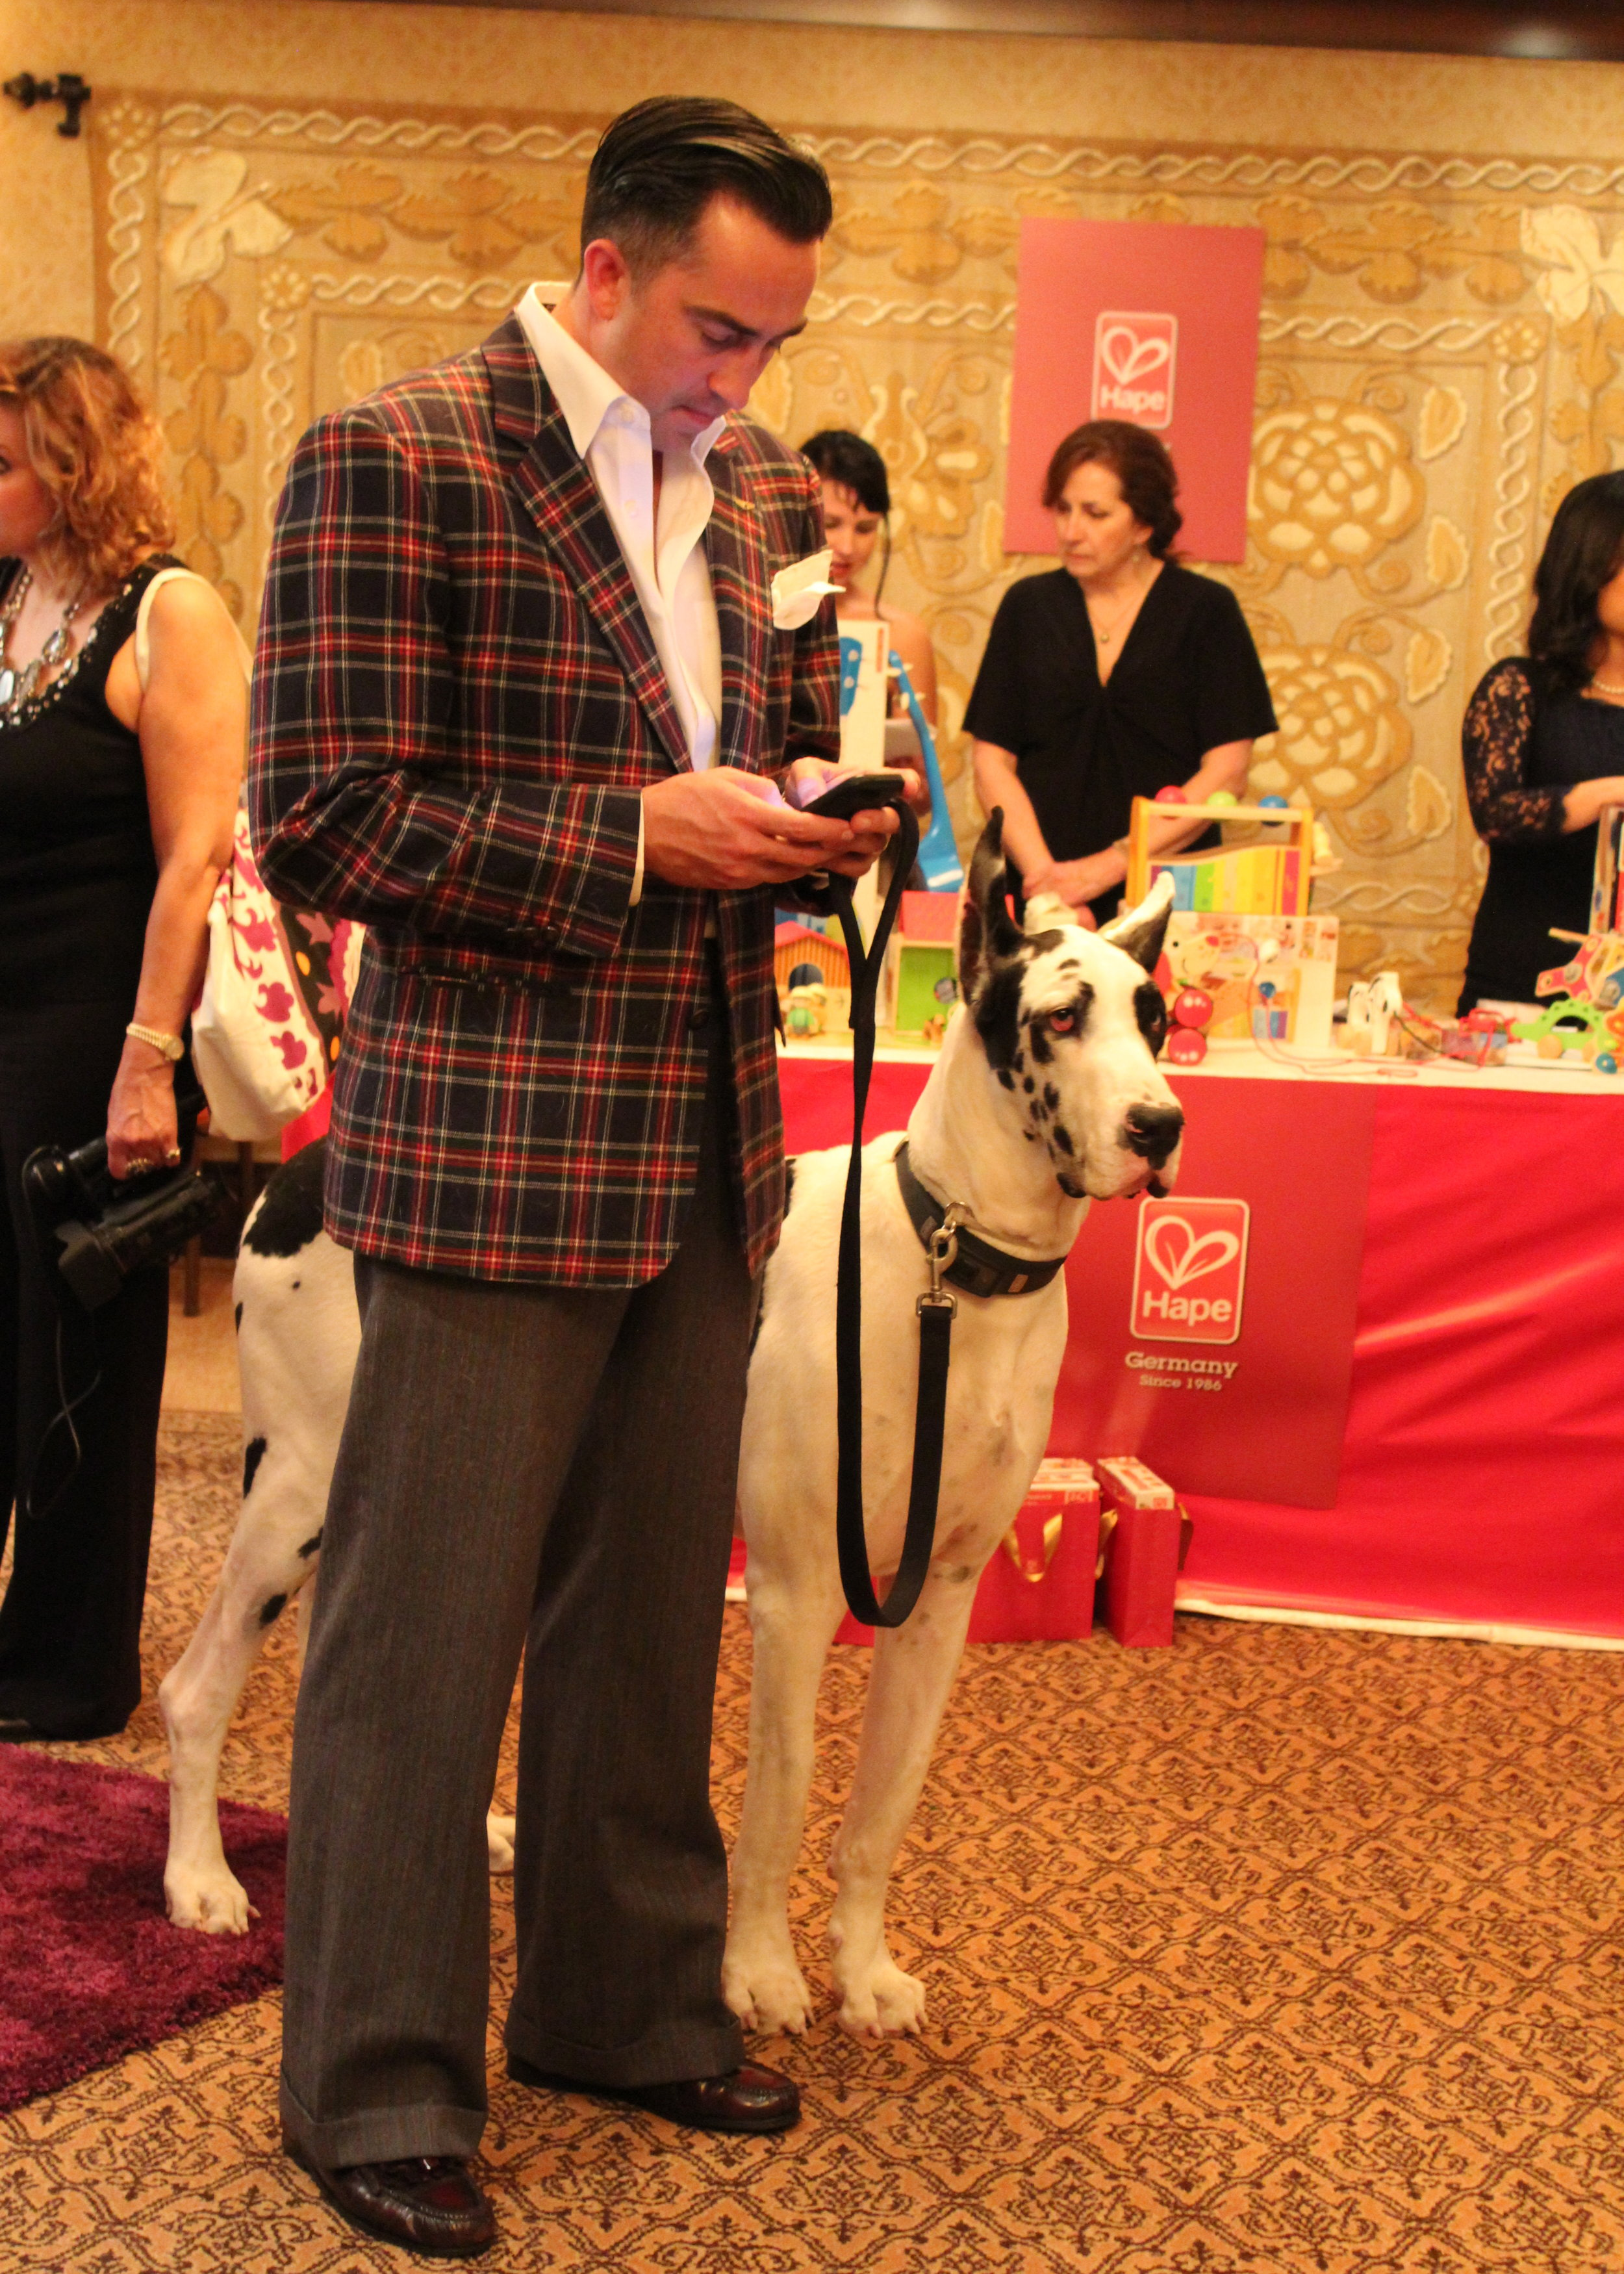 Unfortunately, this adorable Great Dane wasn't a freebie.